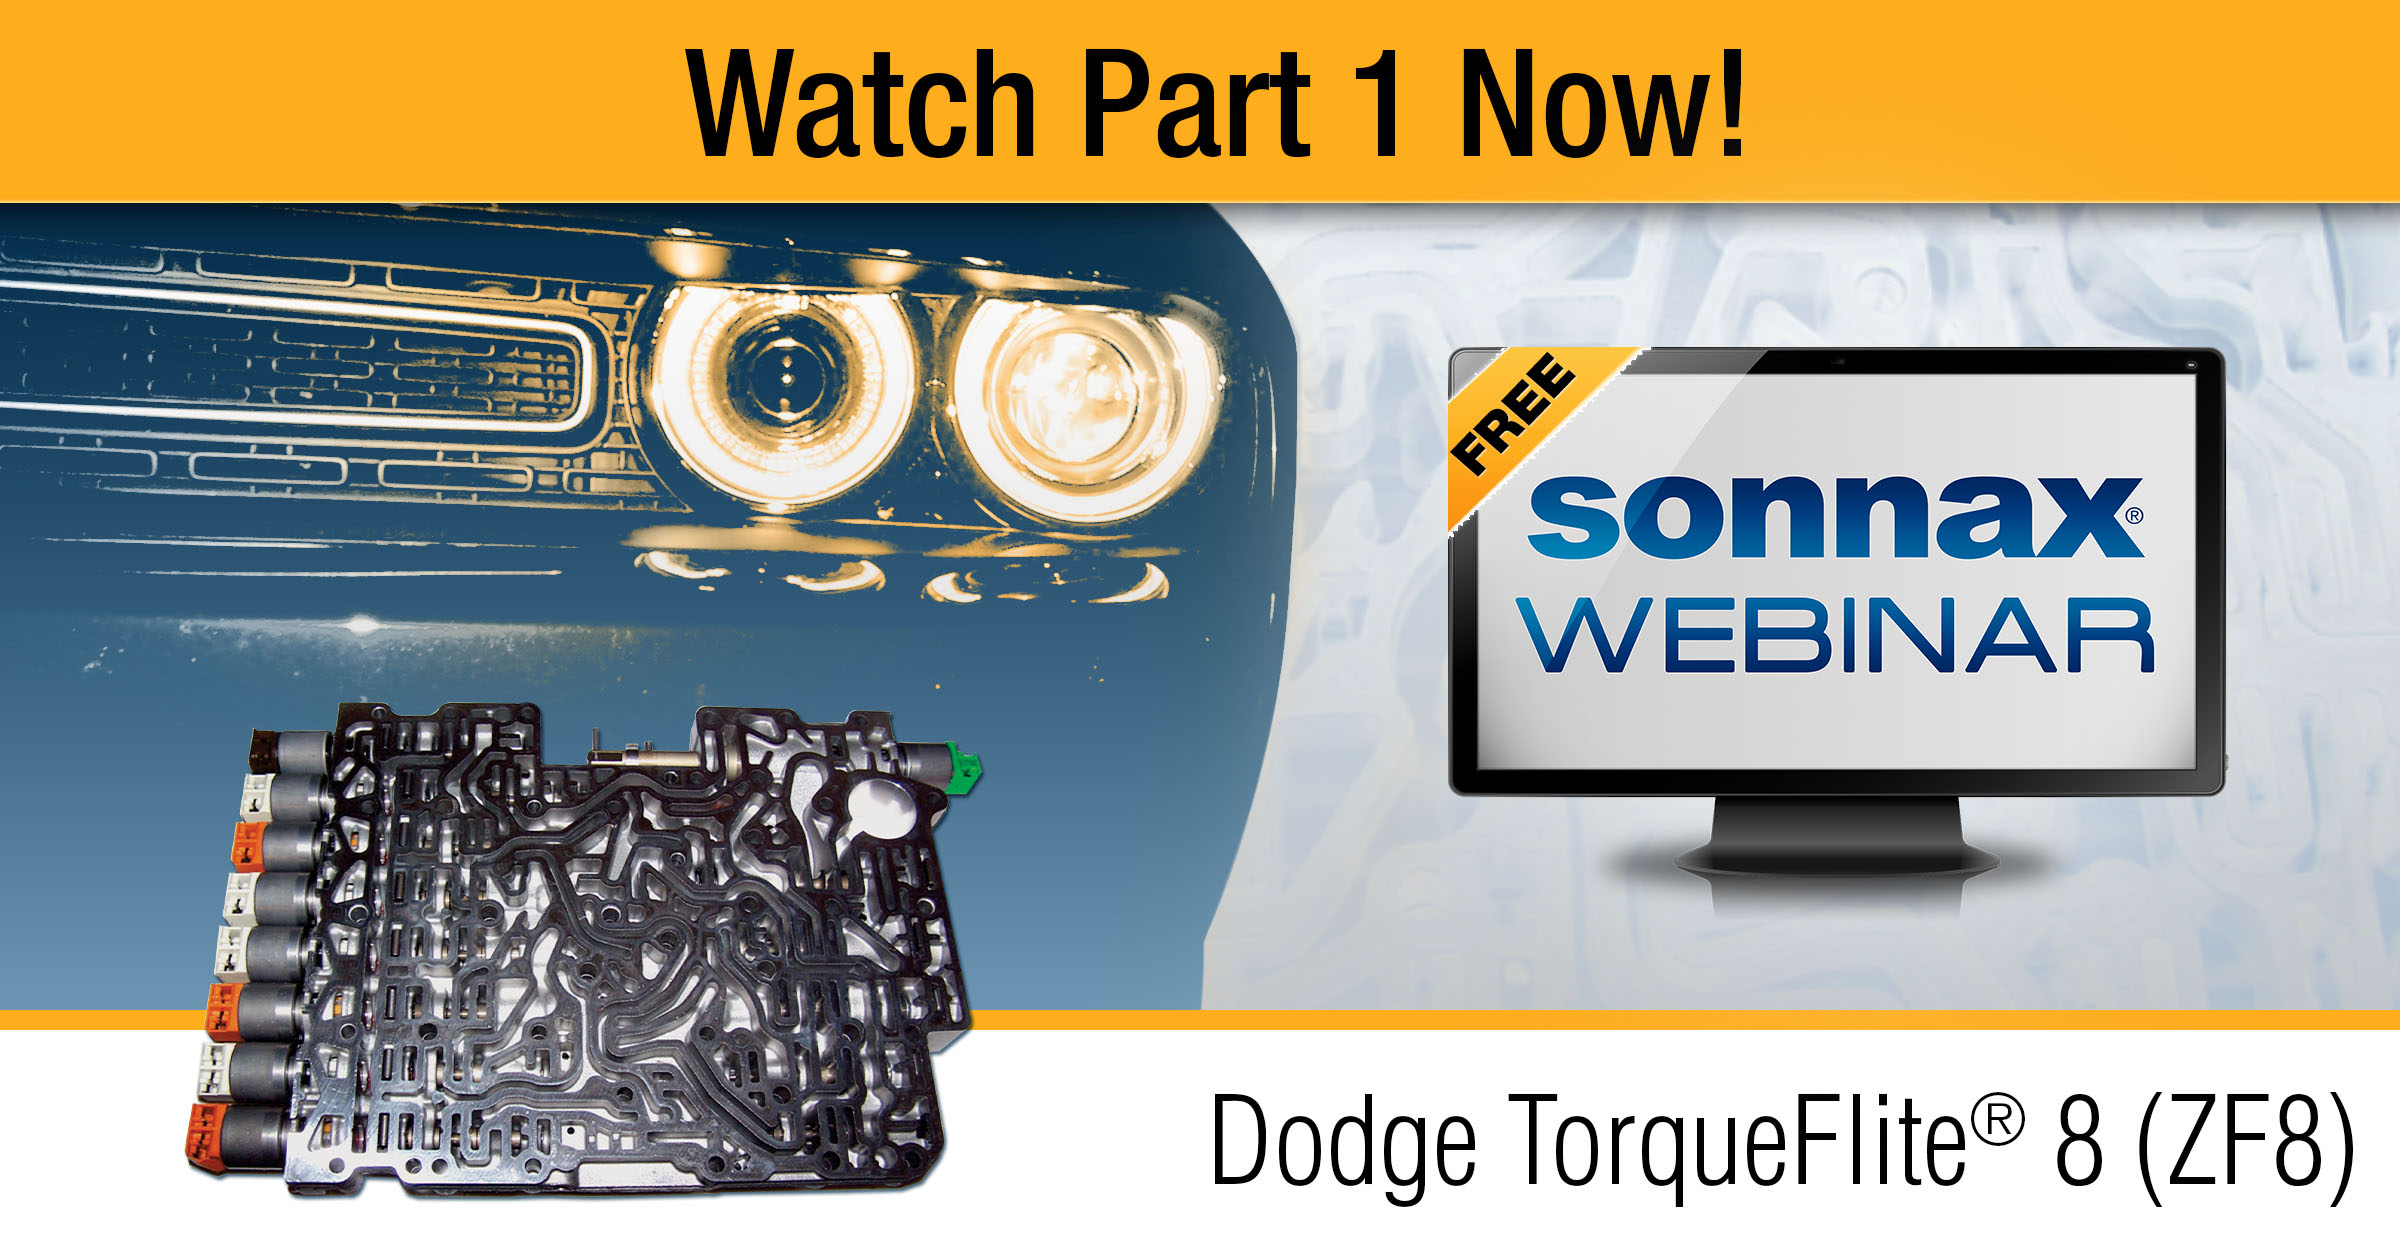 Dodge TorqueFlite® 8 (ZF8) Webinar – Part 1 Released